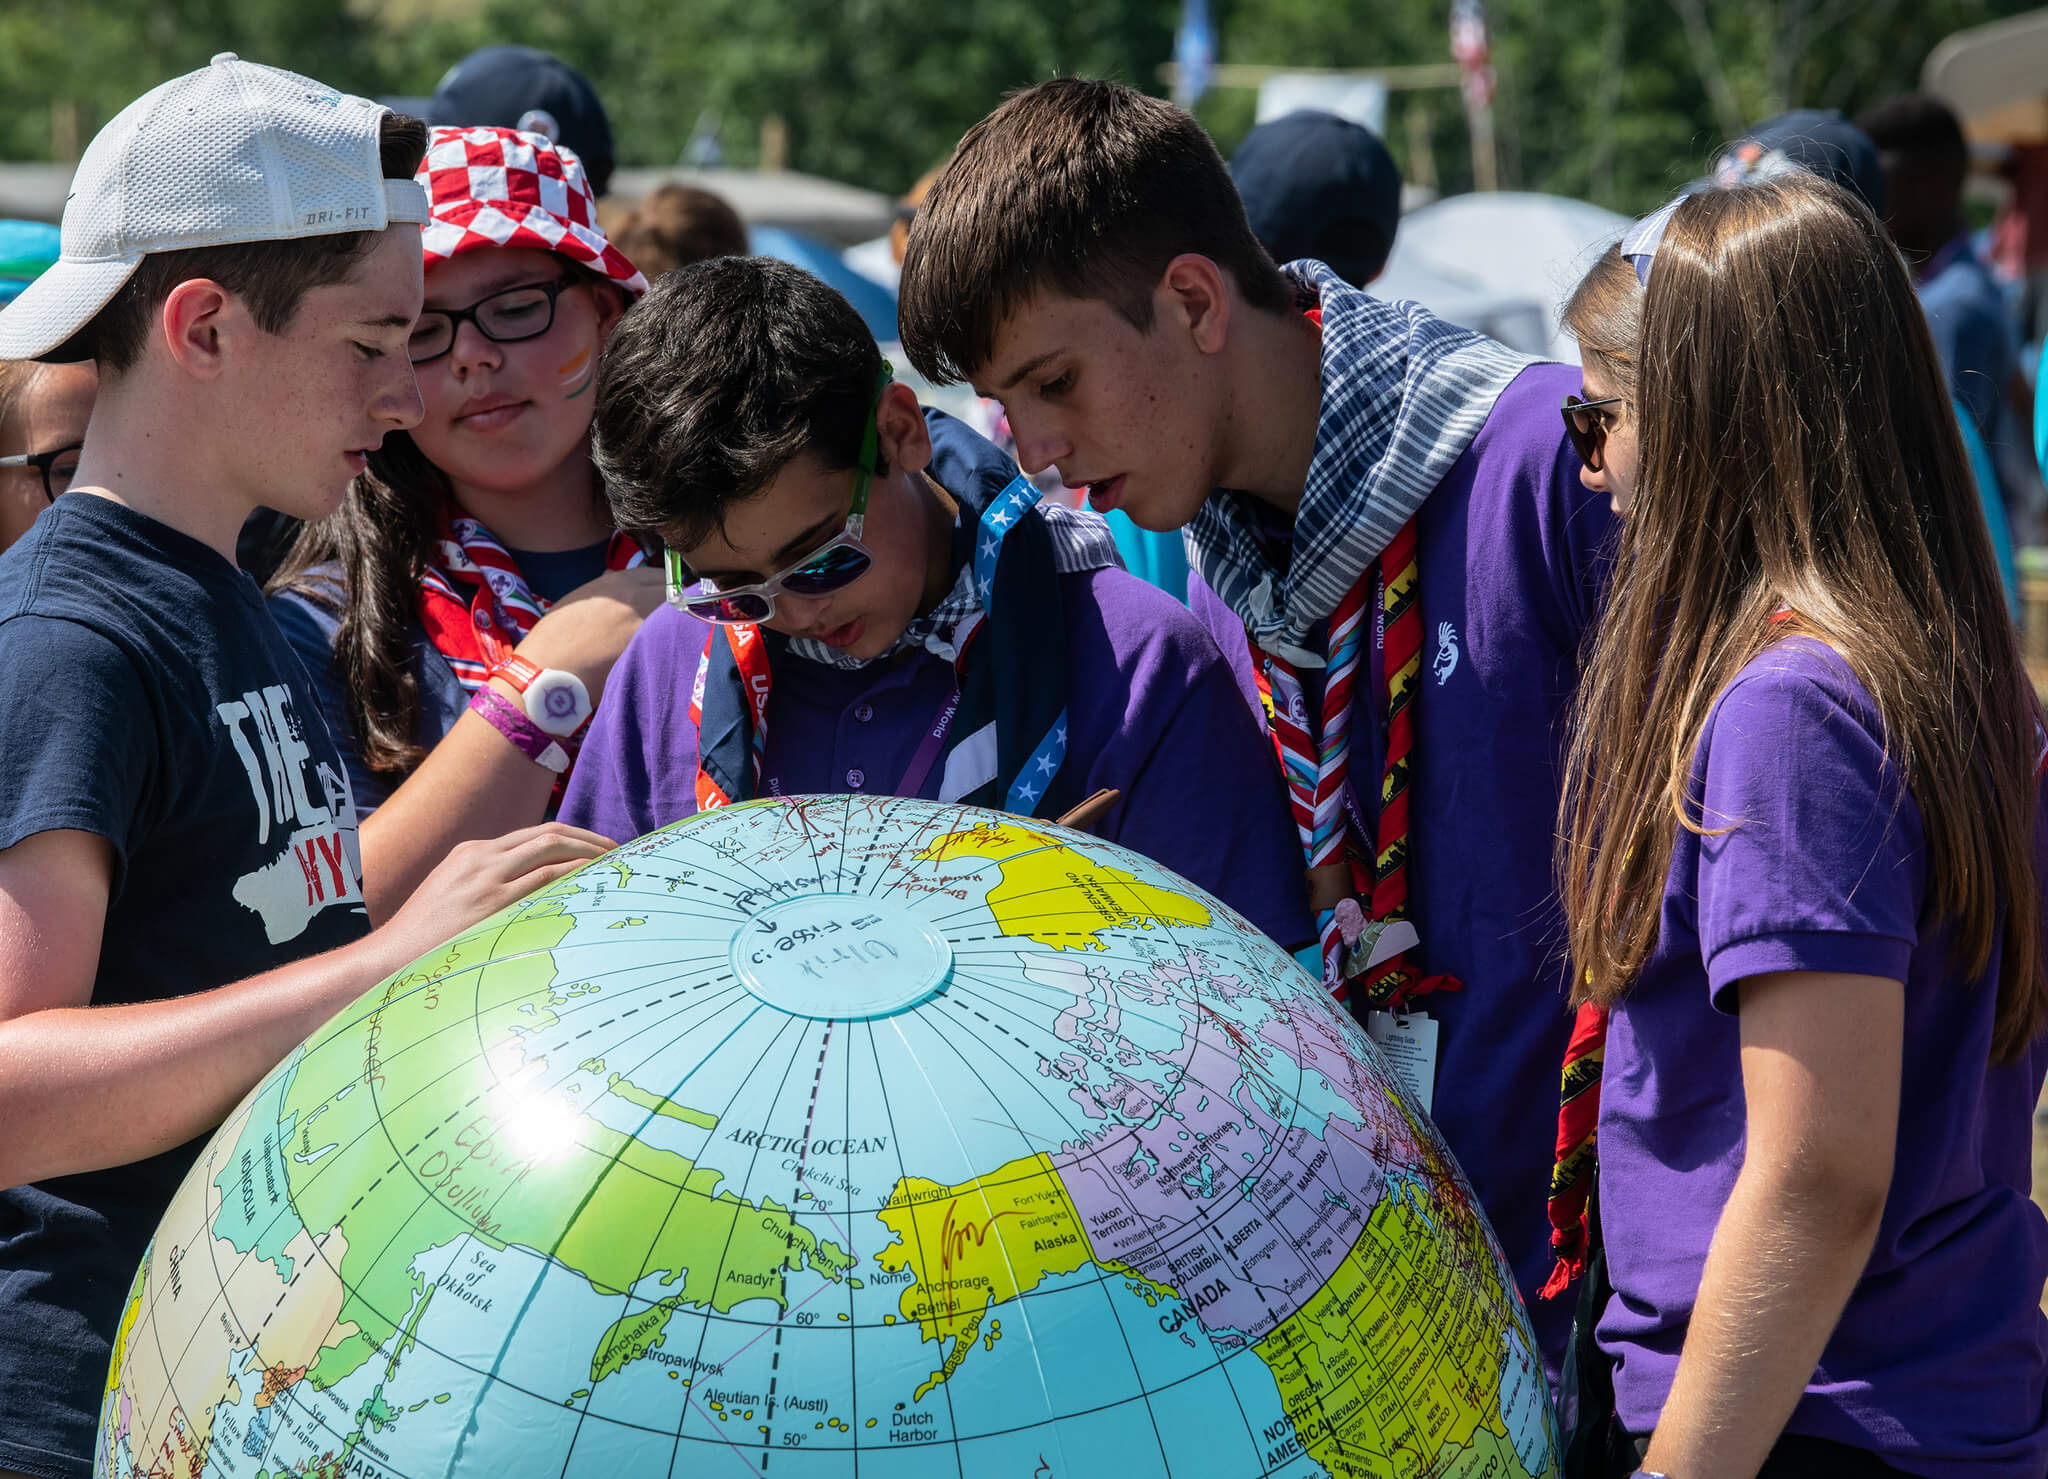 Scouts Looking at Giant Globe World Scout Jamboree 2023